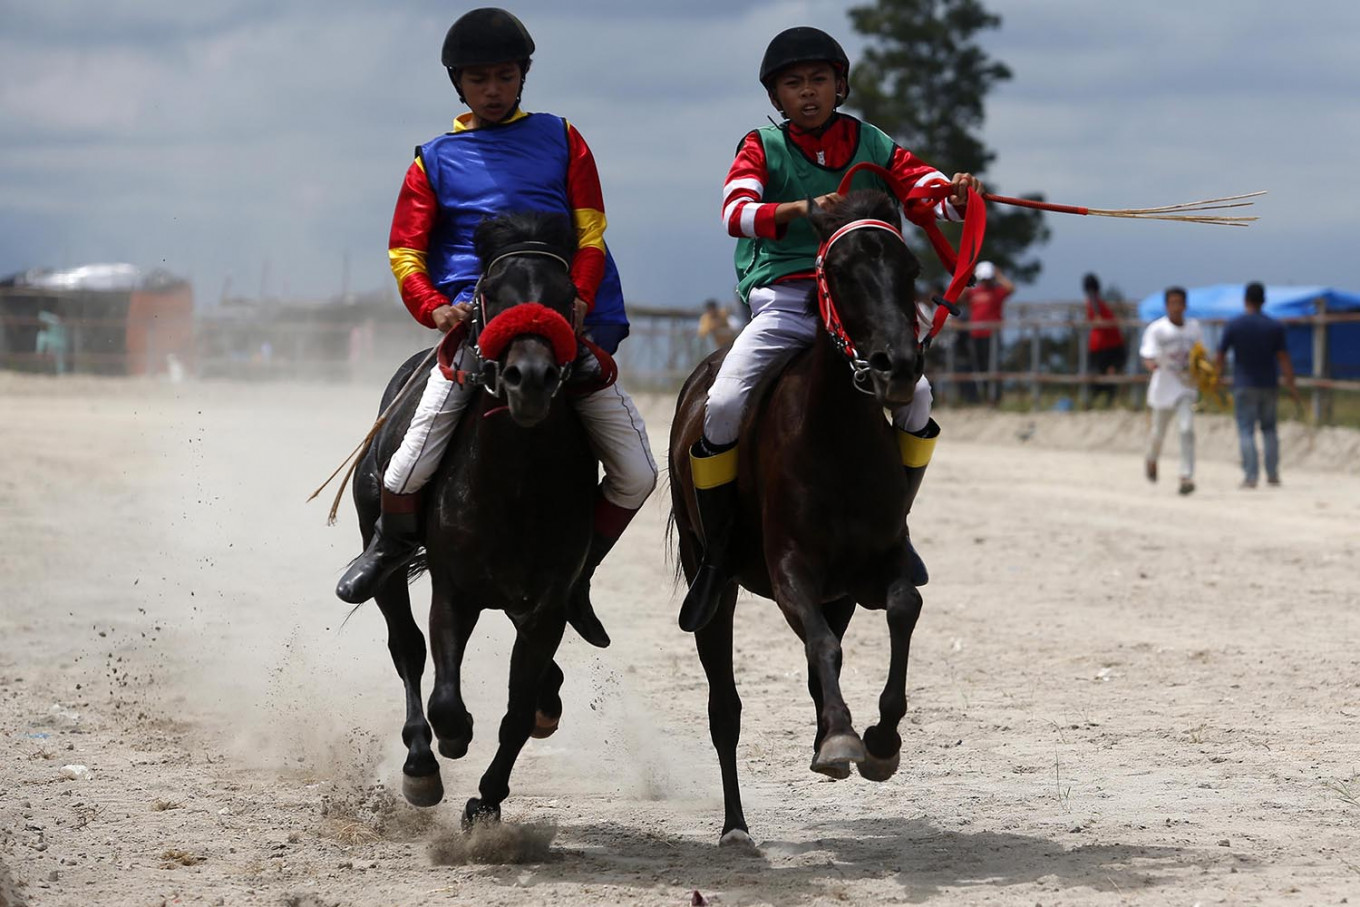 Head to head: Ari (right) paces his horse to get to the finish line before his opponent does. JP/Hotli Simanjuntak